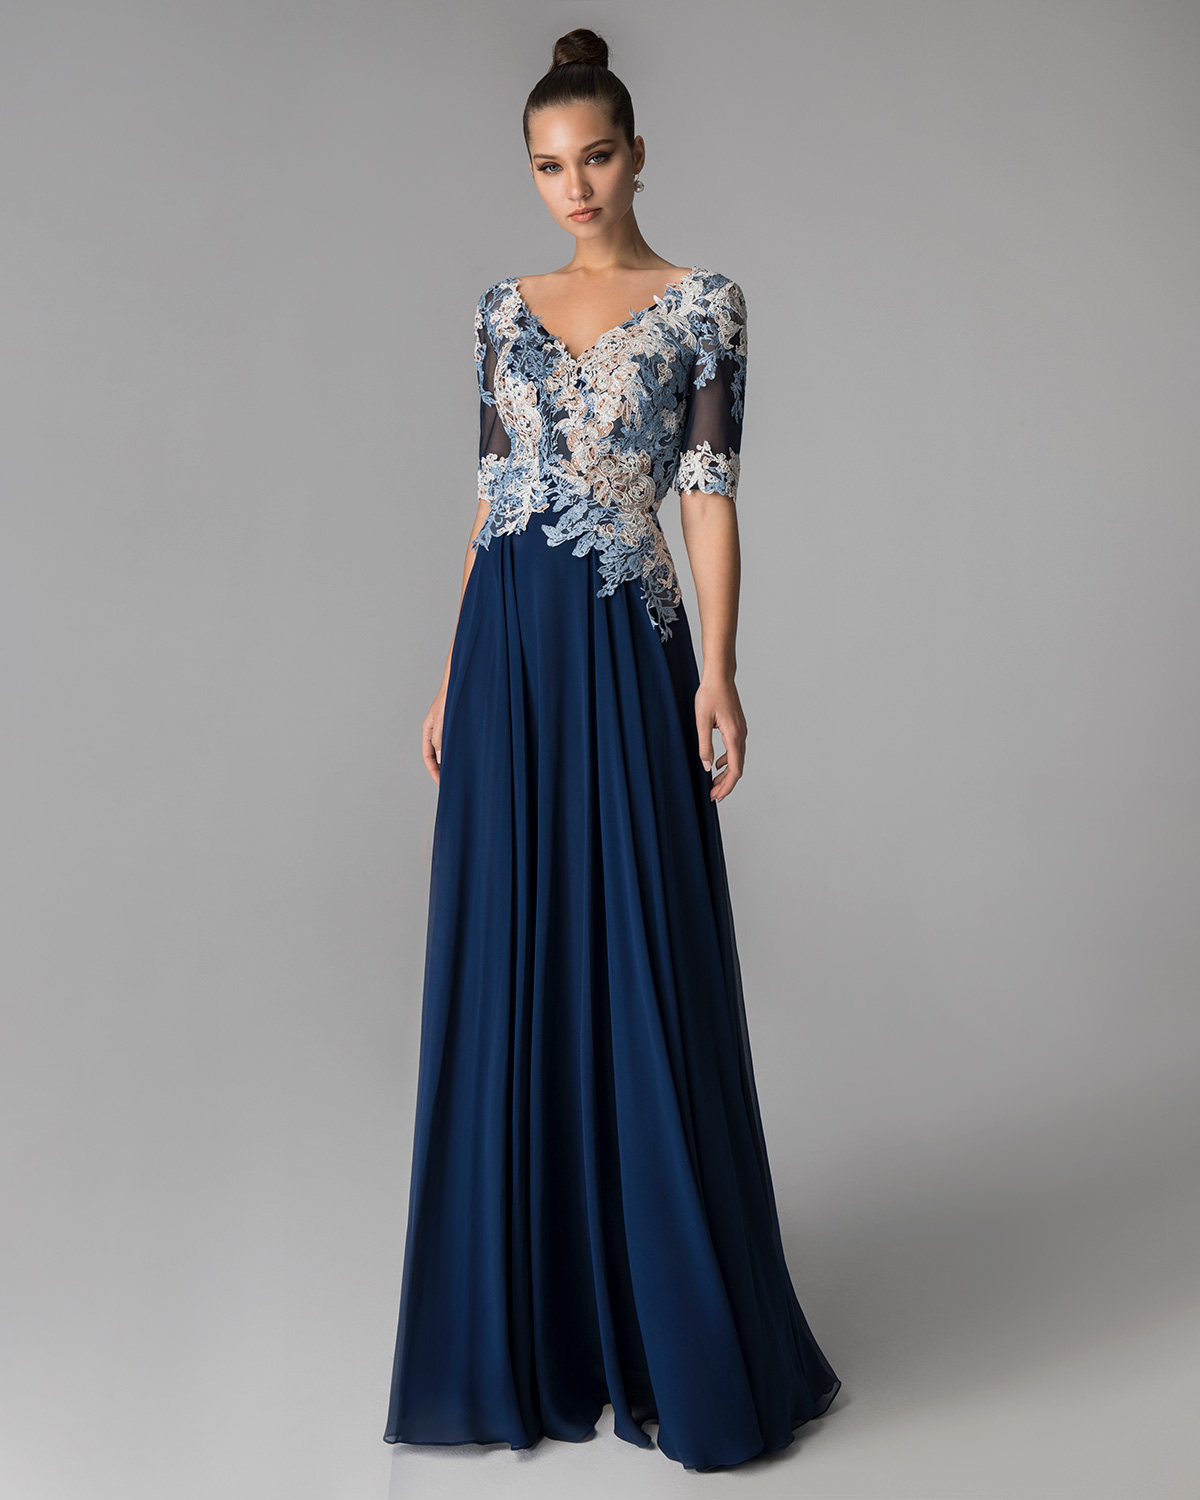 Long evening dress with applique lace on the top and short sleeves